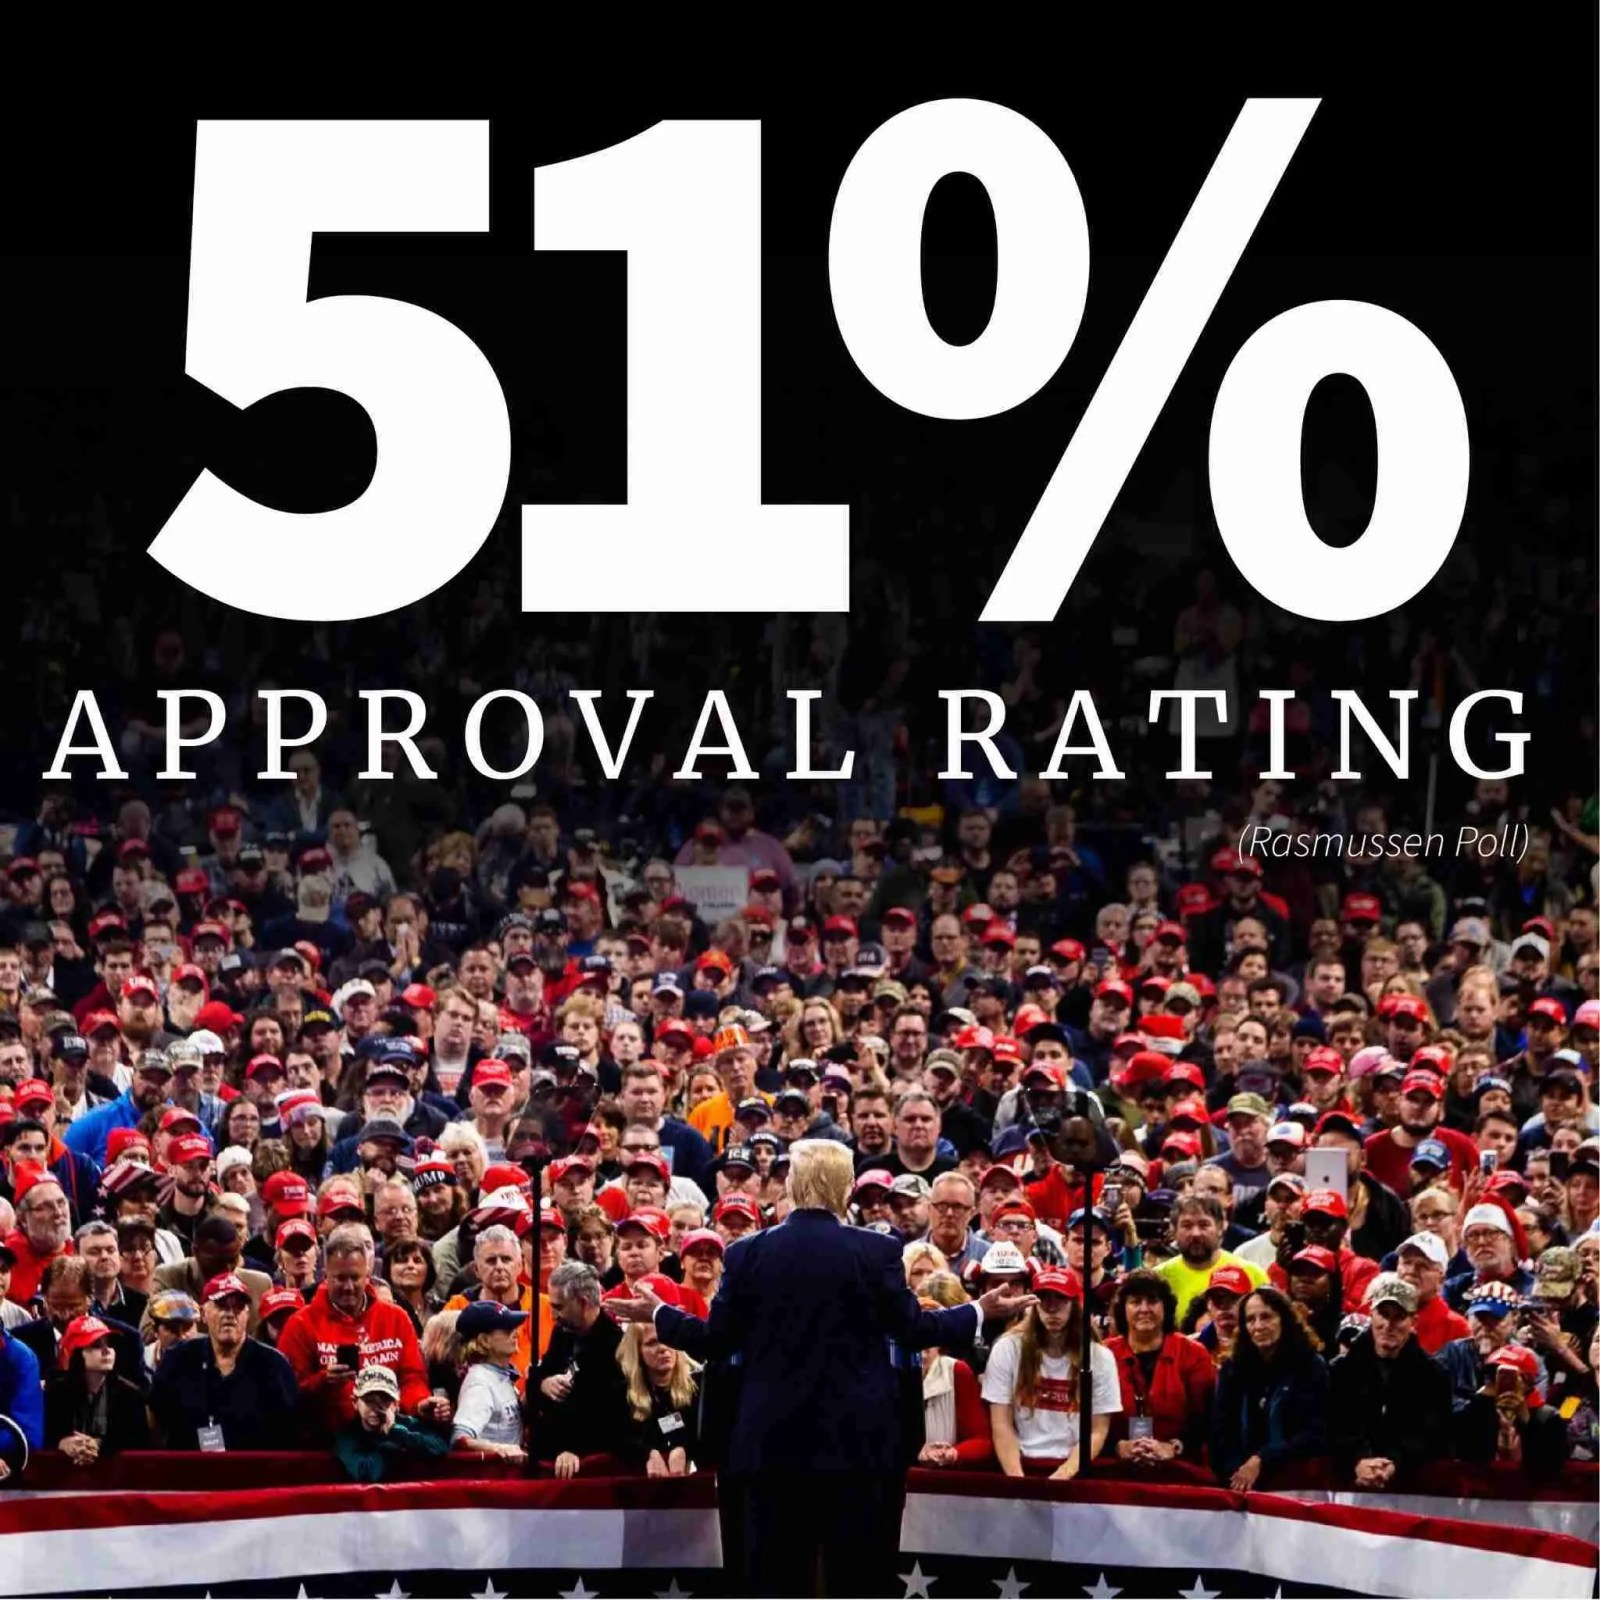 CNN POLL says 51% of Americans are Hoping the Senate Convicts President Trump 7